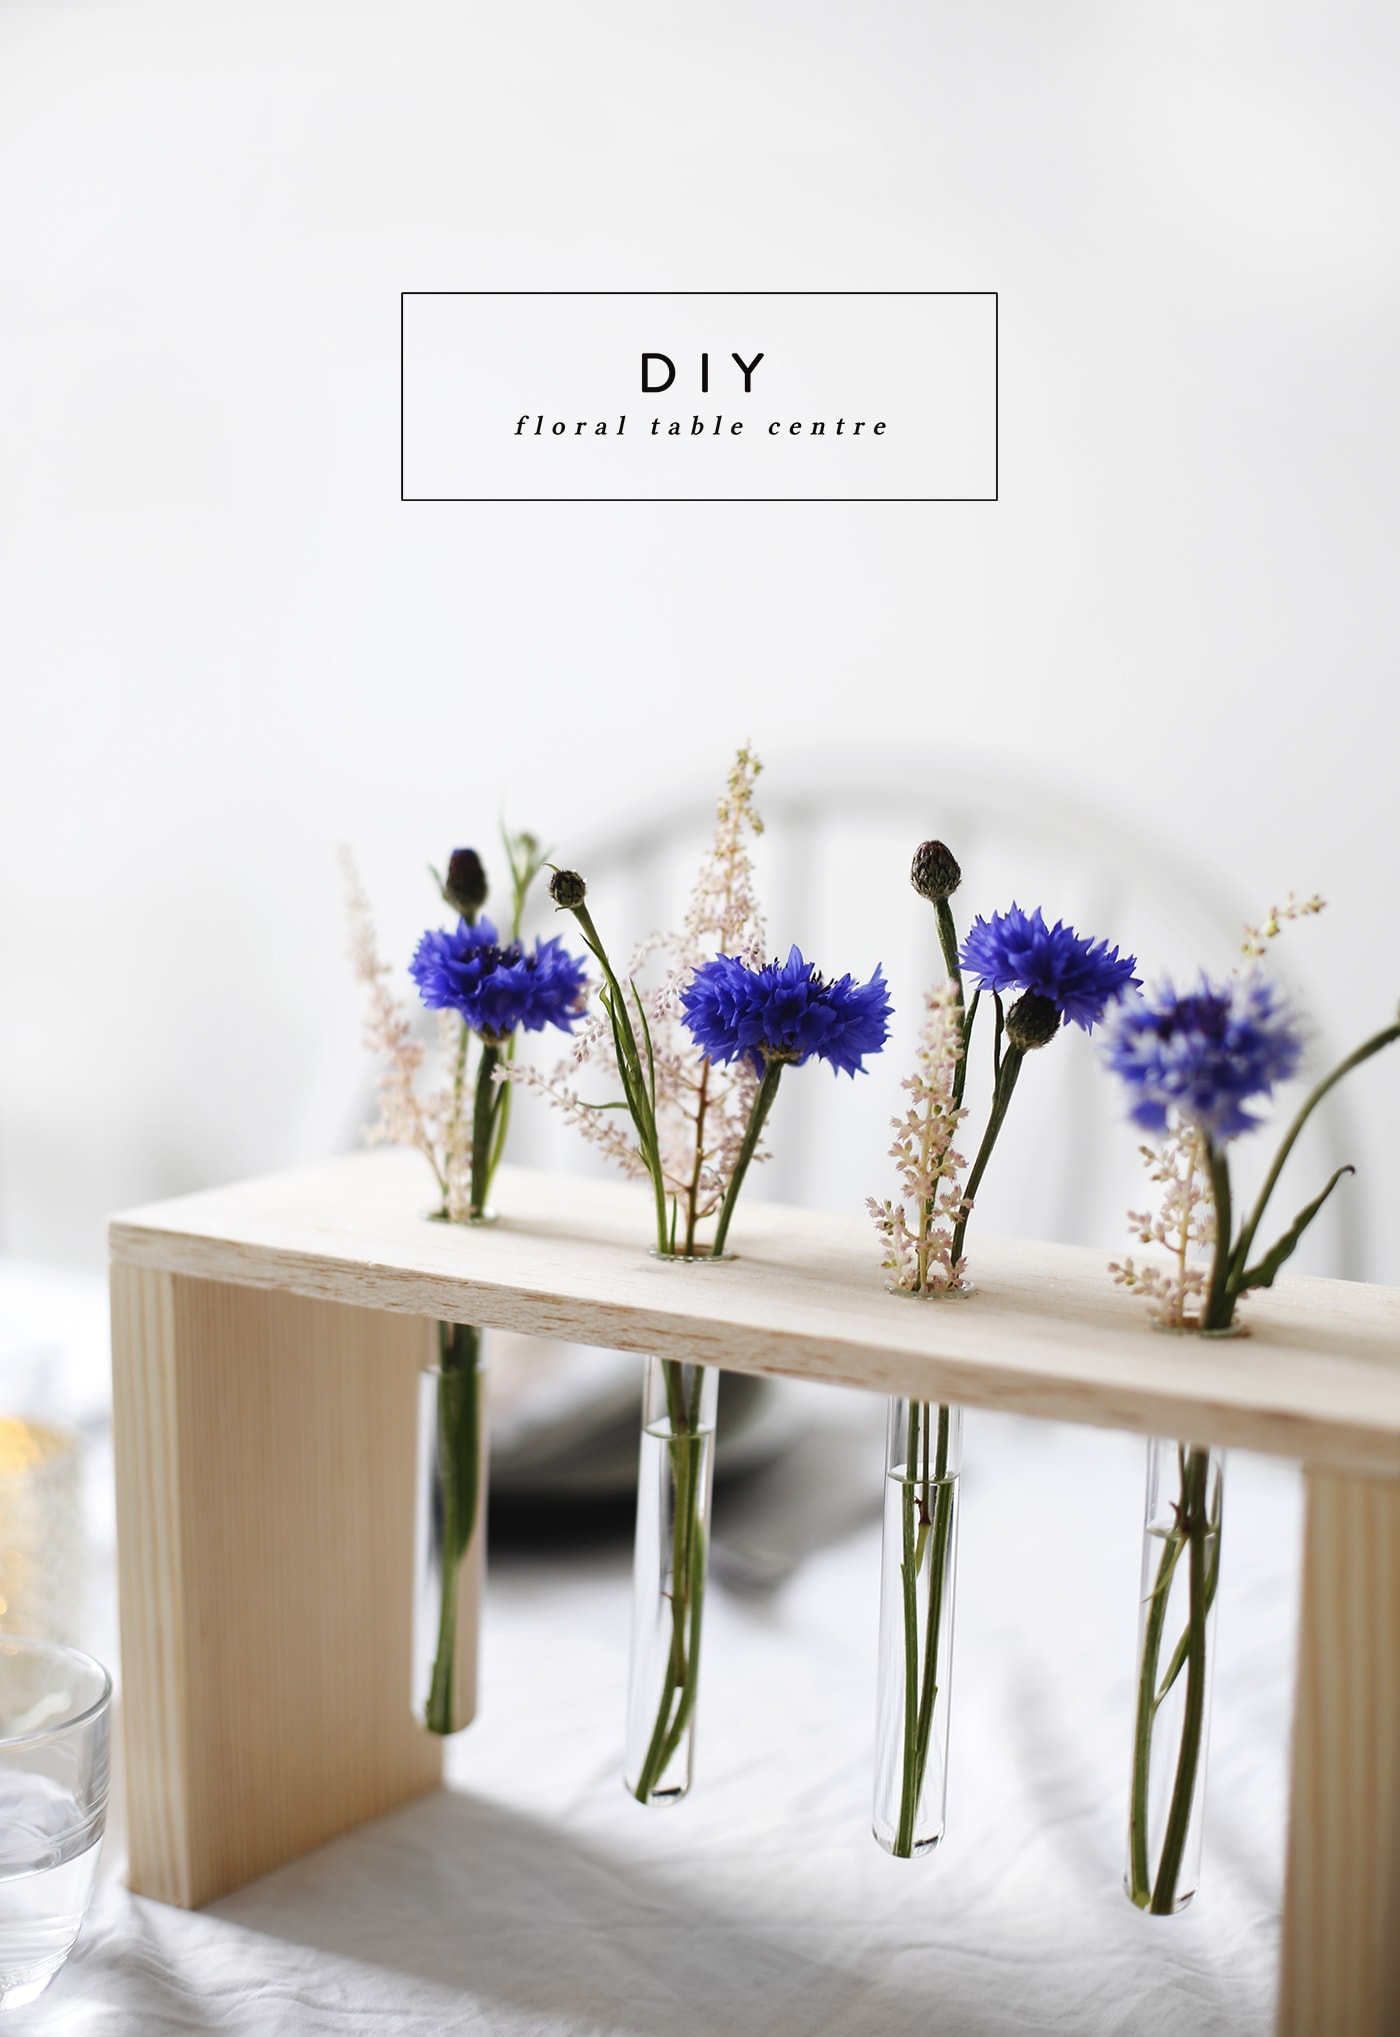 DIY floral table centre | home diy tutorials | a fun way to display flowers